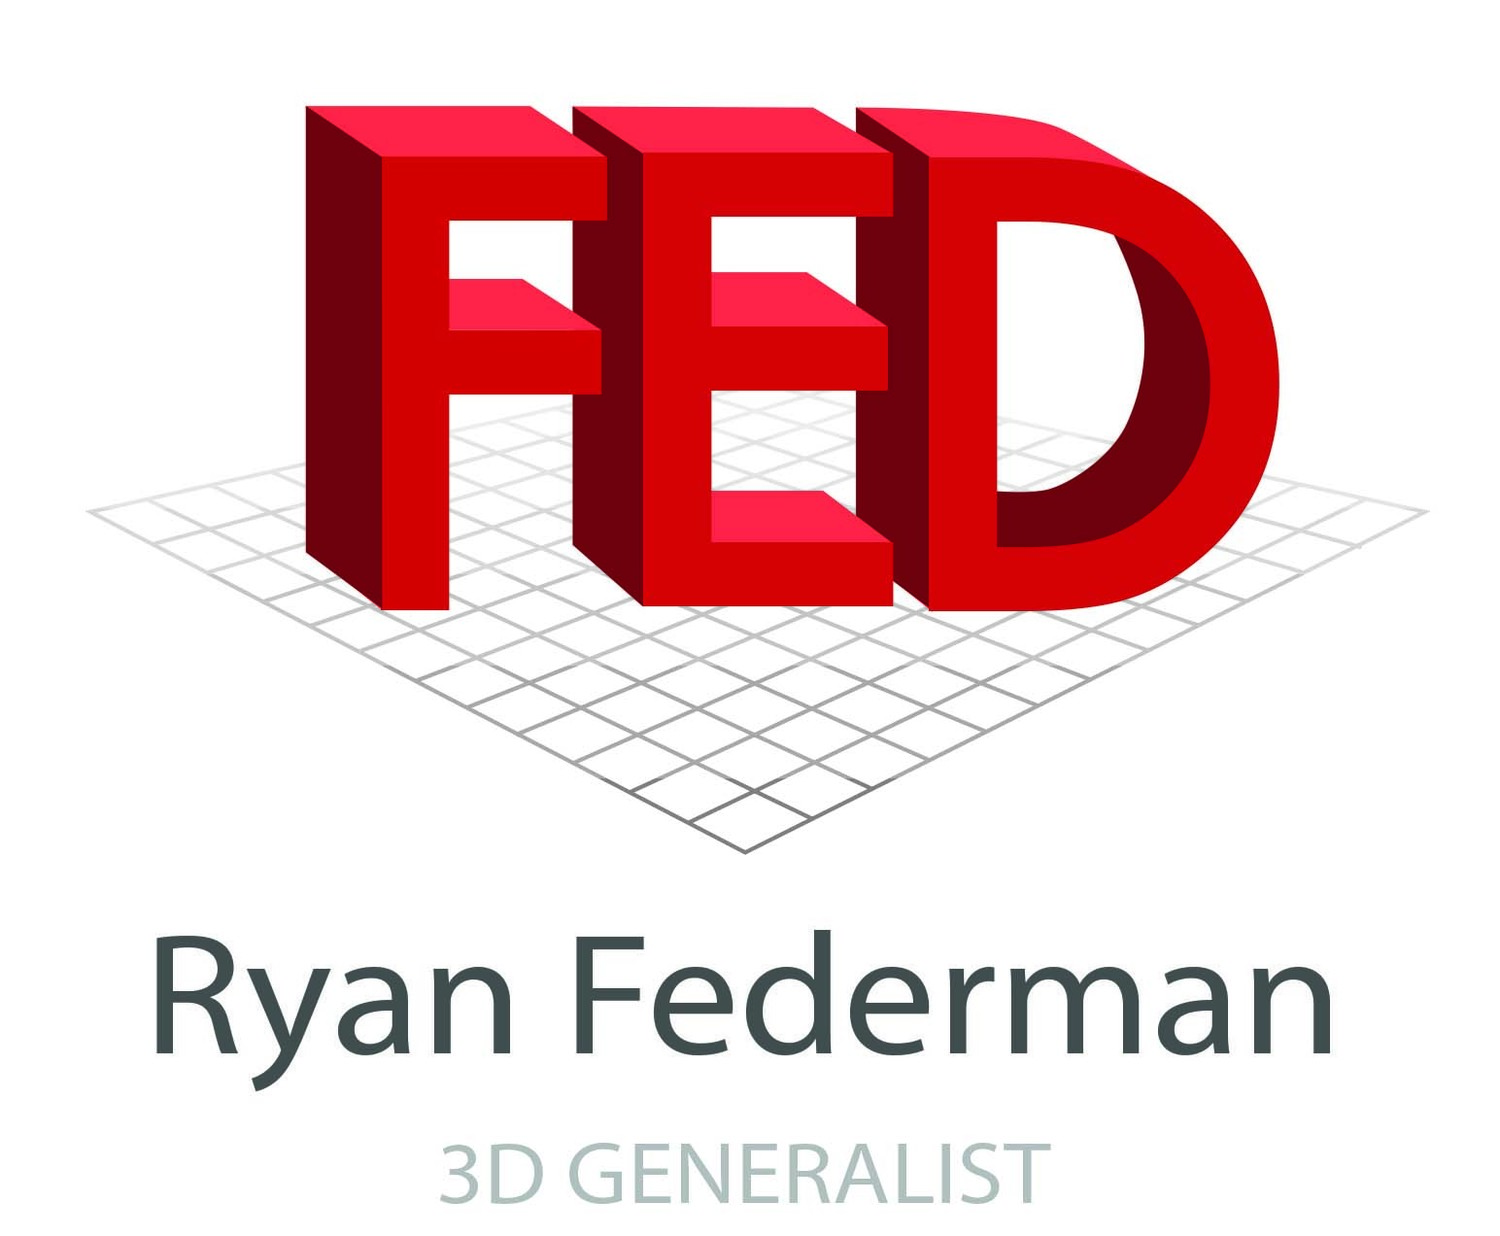 Ryan Federman